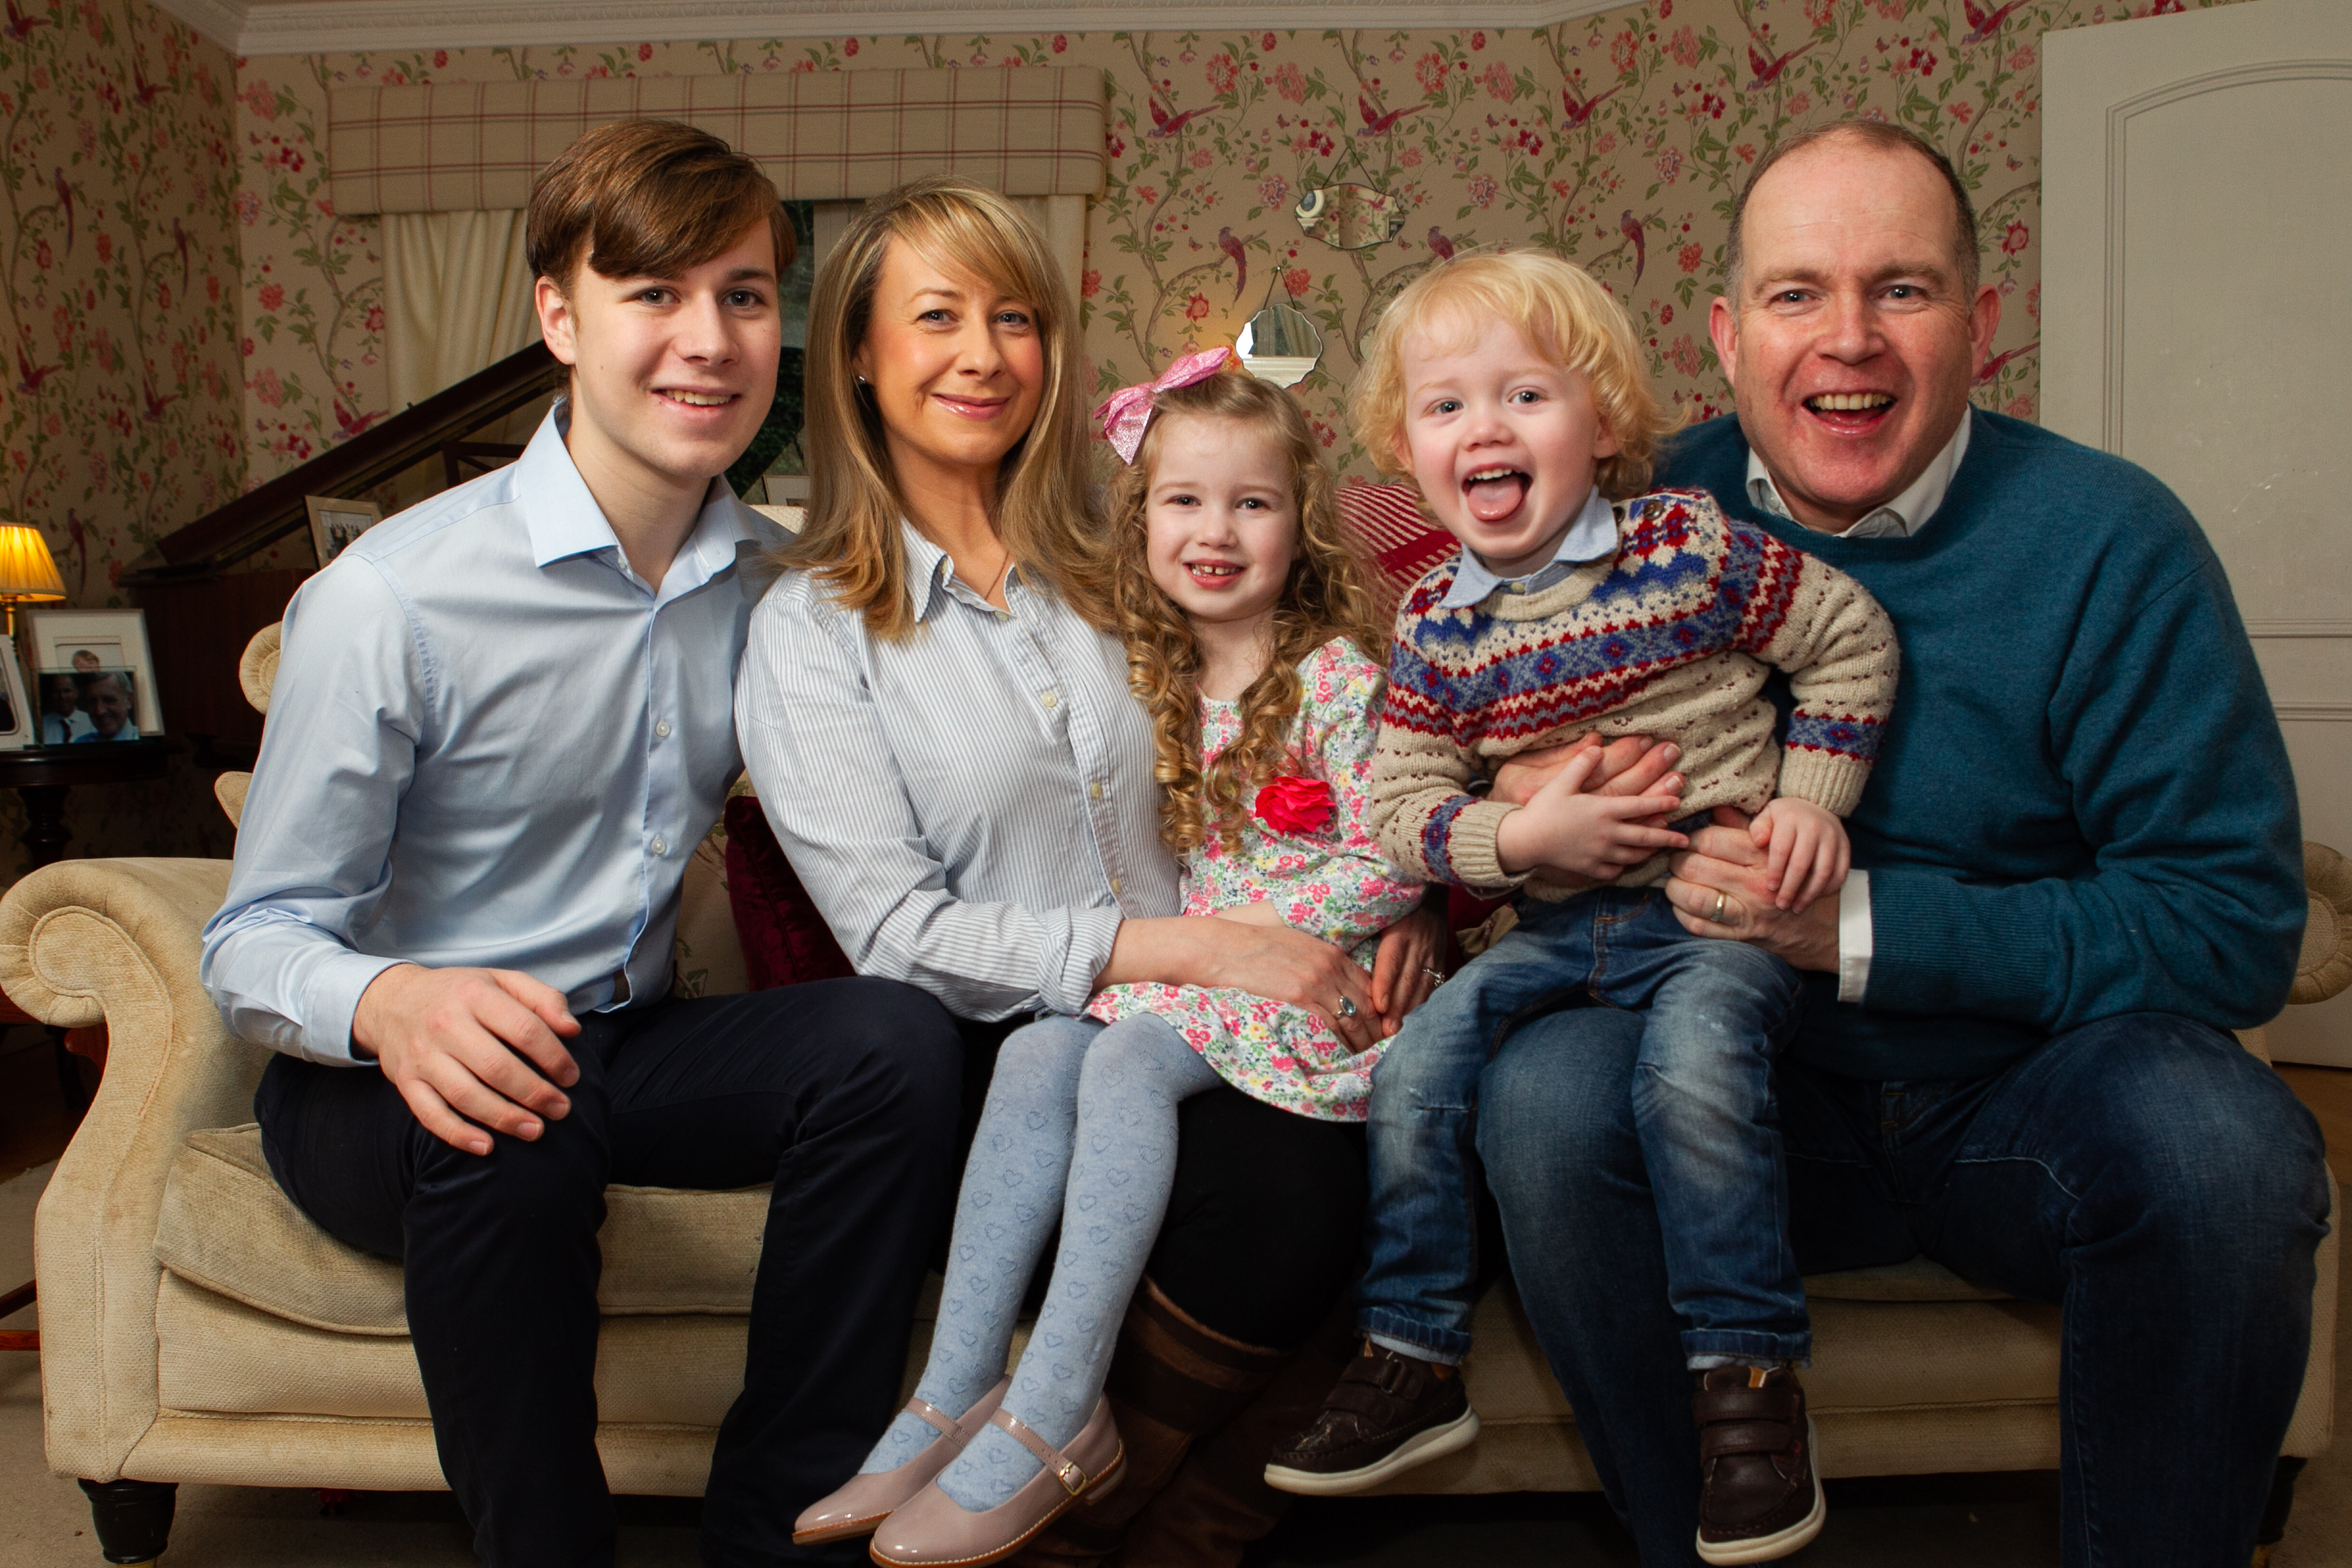 The Dickson family, mother and father Kirsteen and Steve, and children Hamish (16), Millie (4) and Alfie (2). (Andrew Cawley)